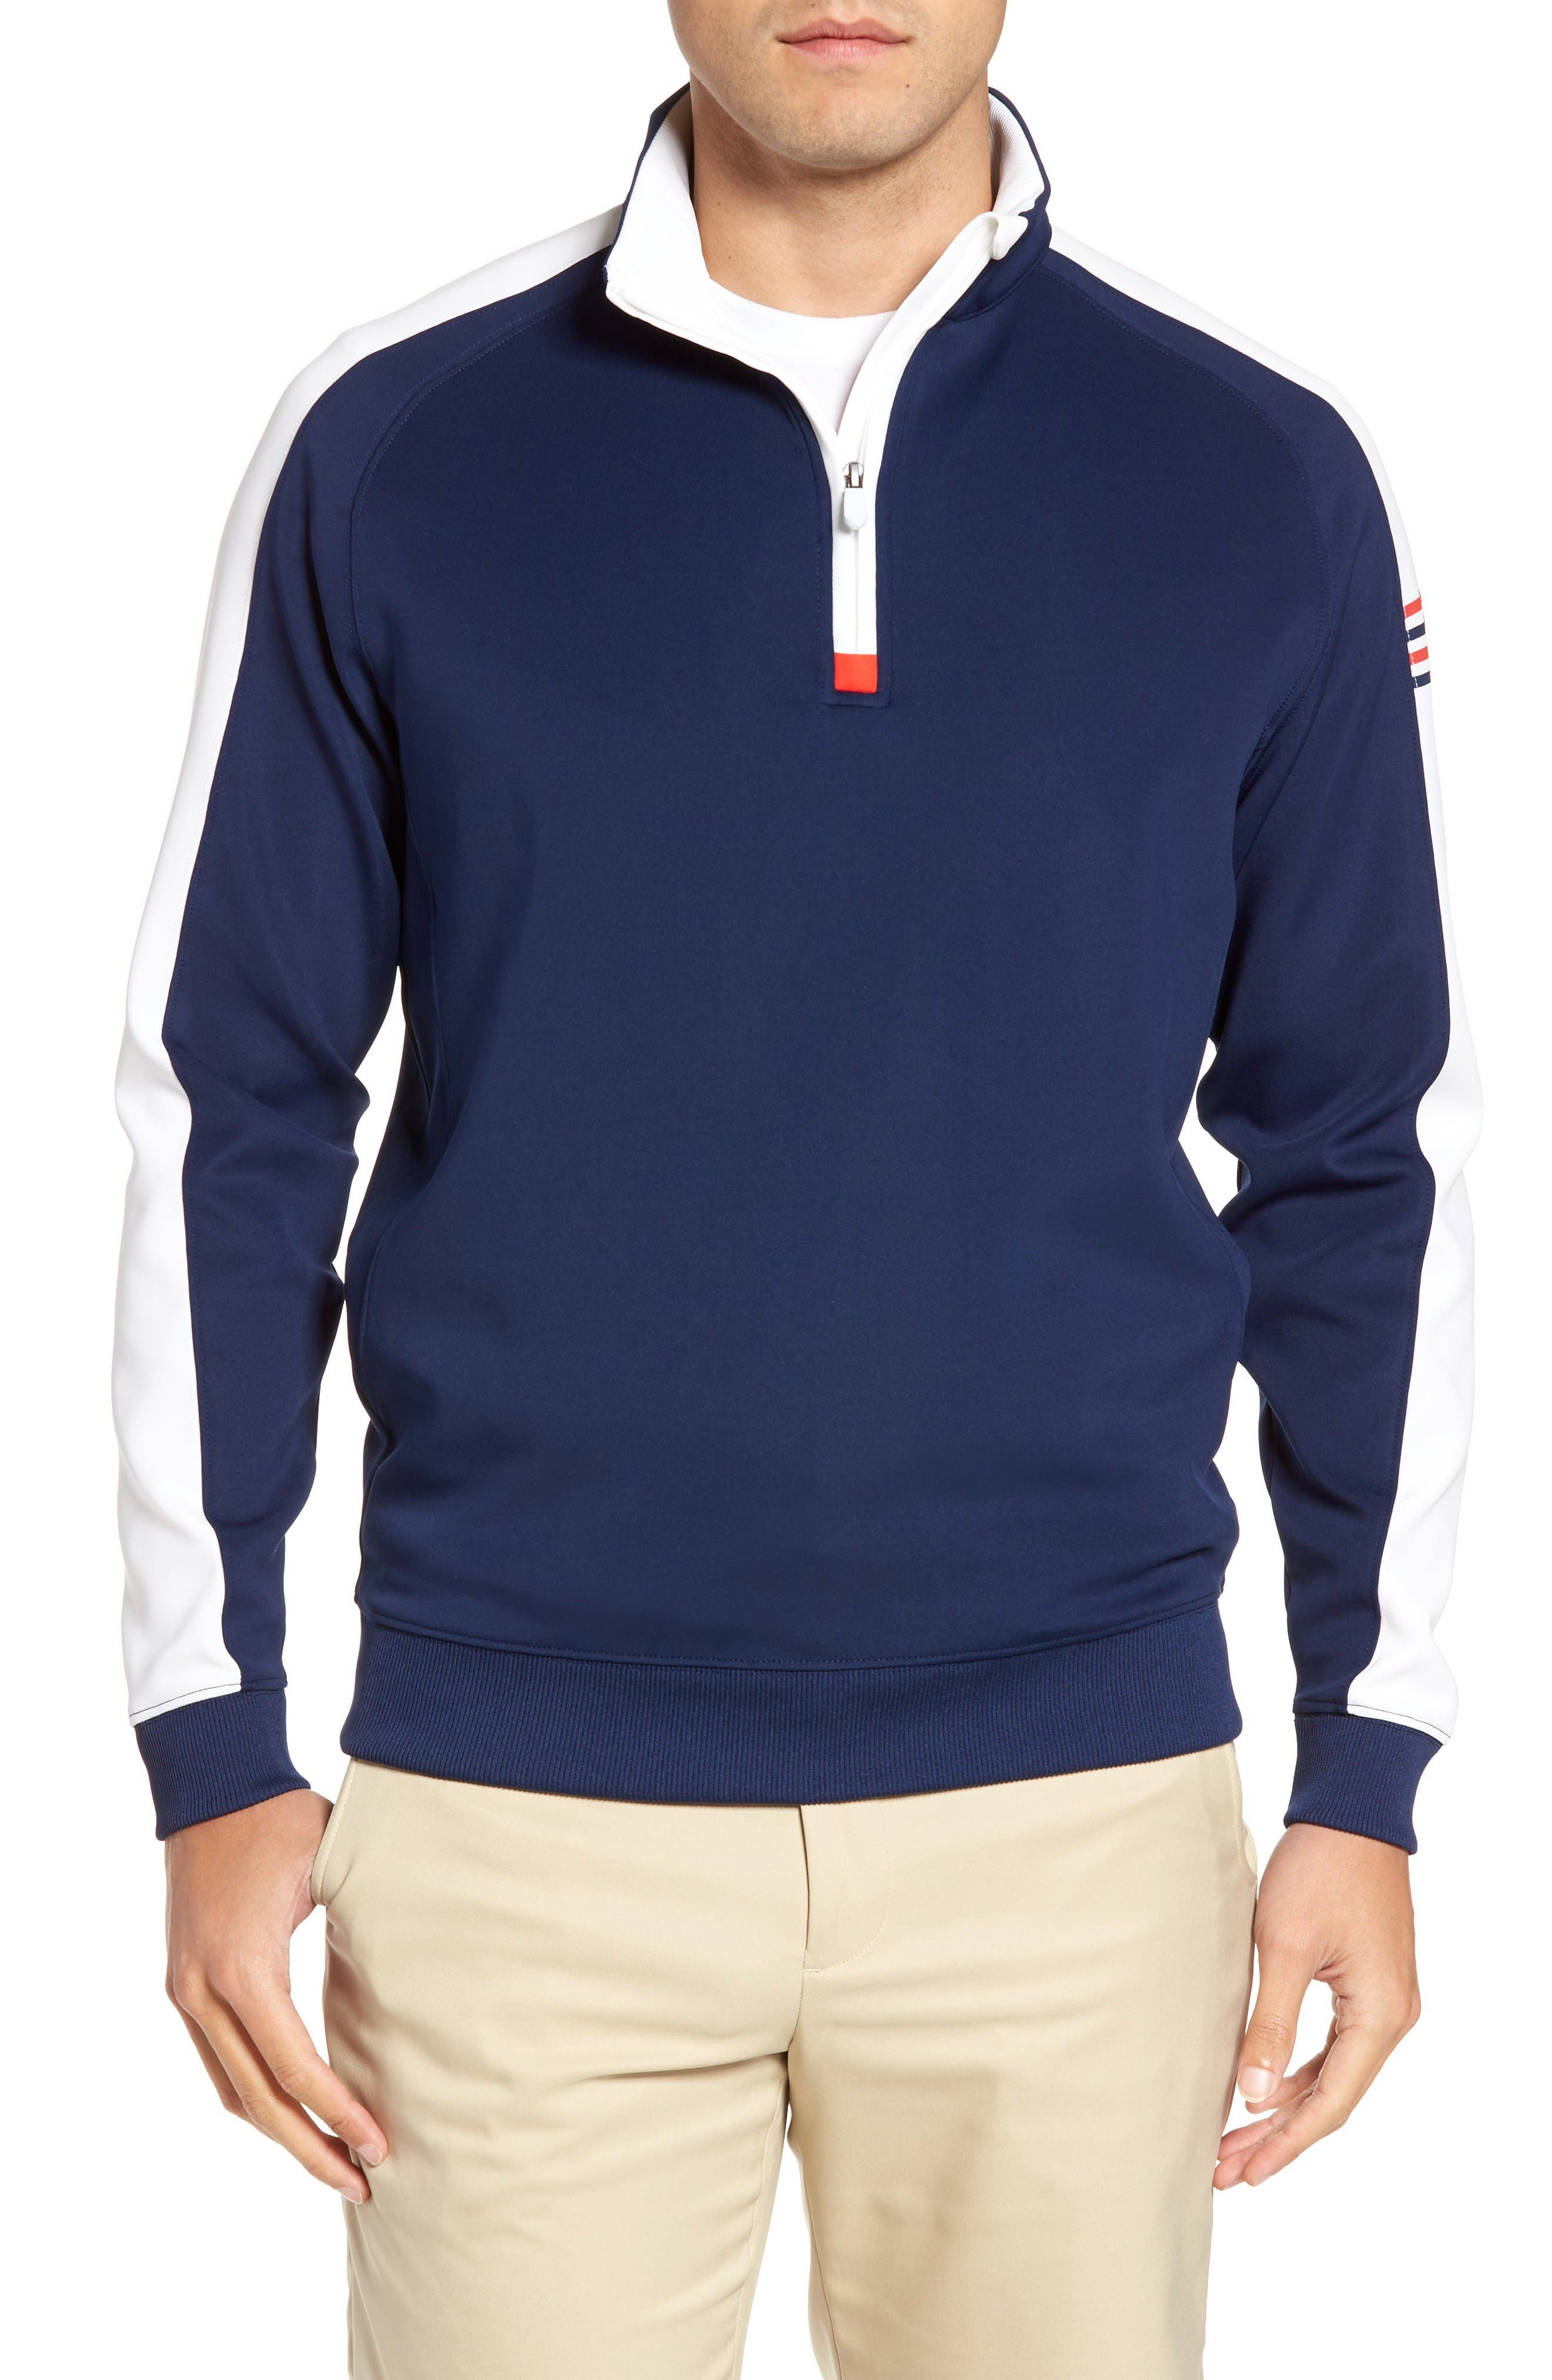 BOBBY JONES XH20 Tech Quarter Zip Sweater